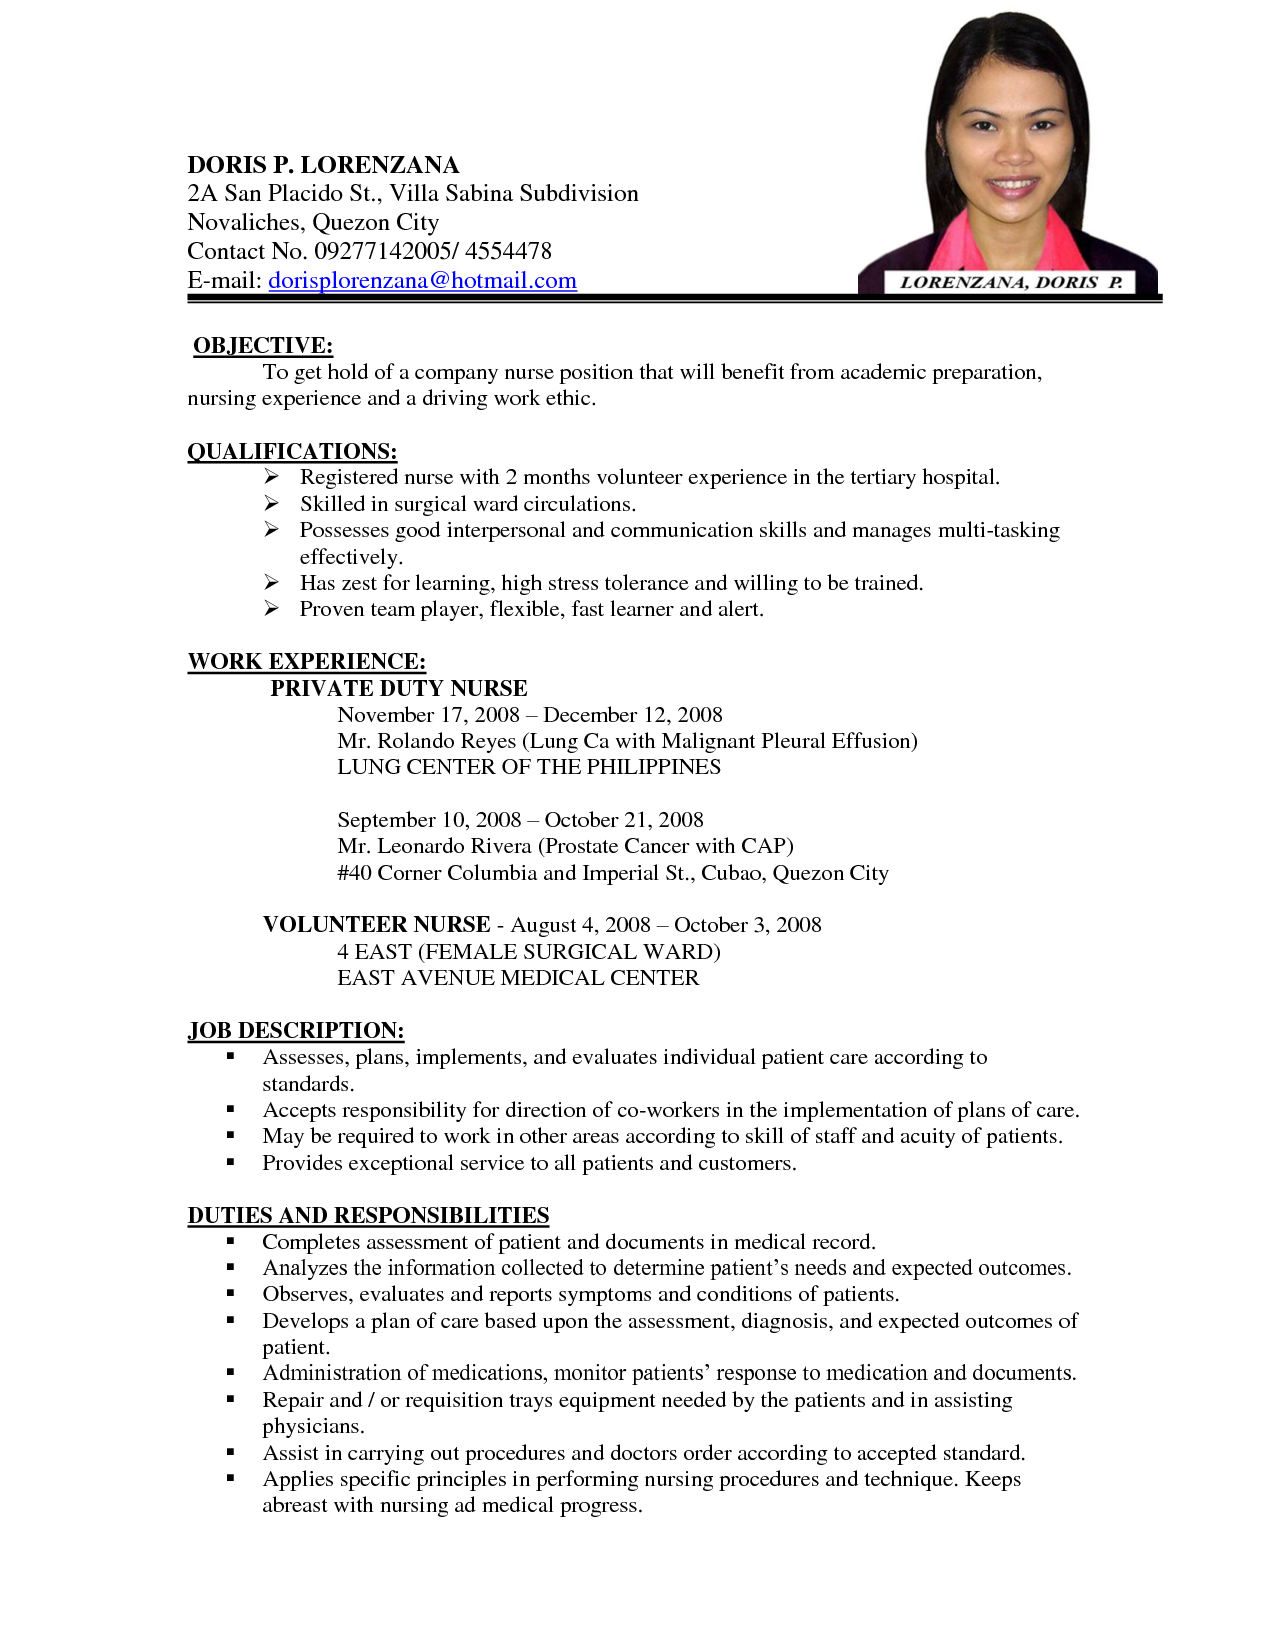 Resume Format Nursing Pic Nurse Template 5 Resume Sample Resume